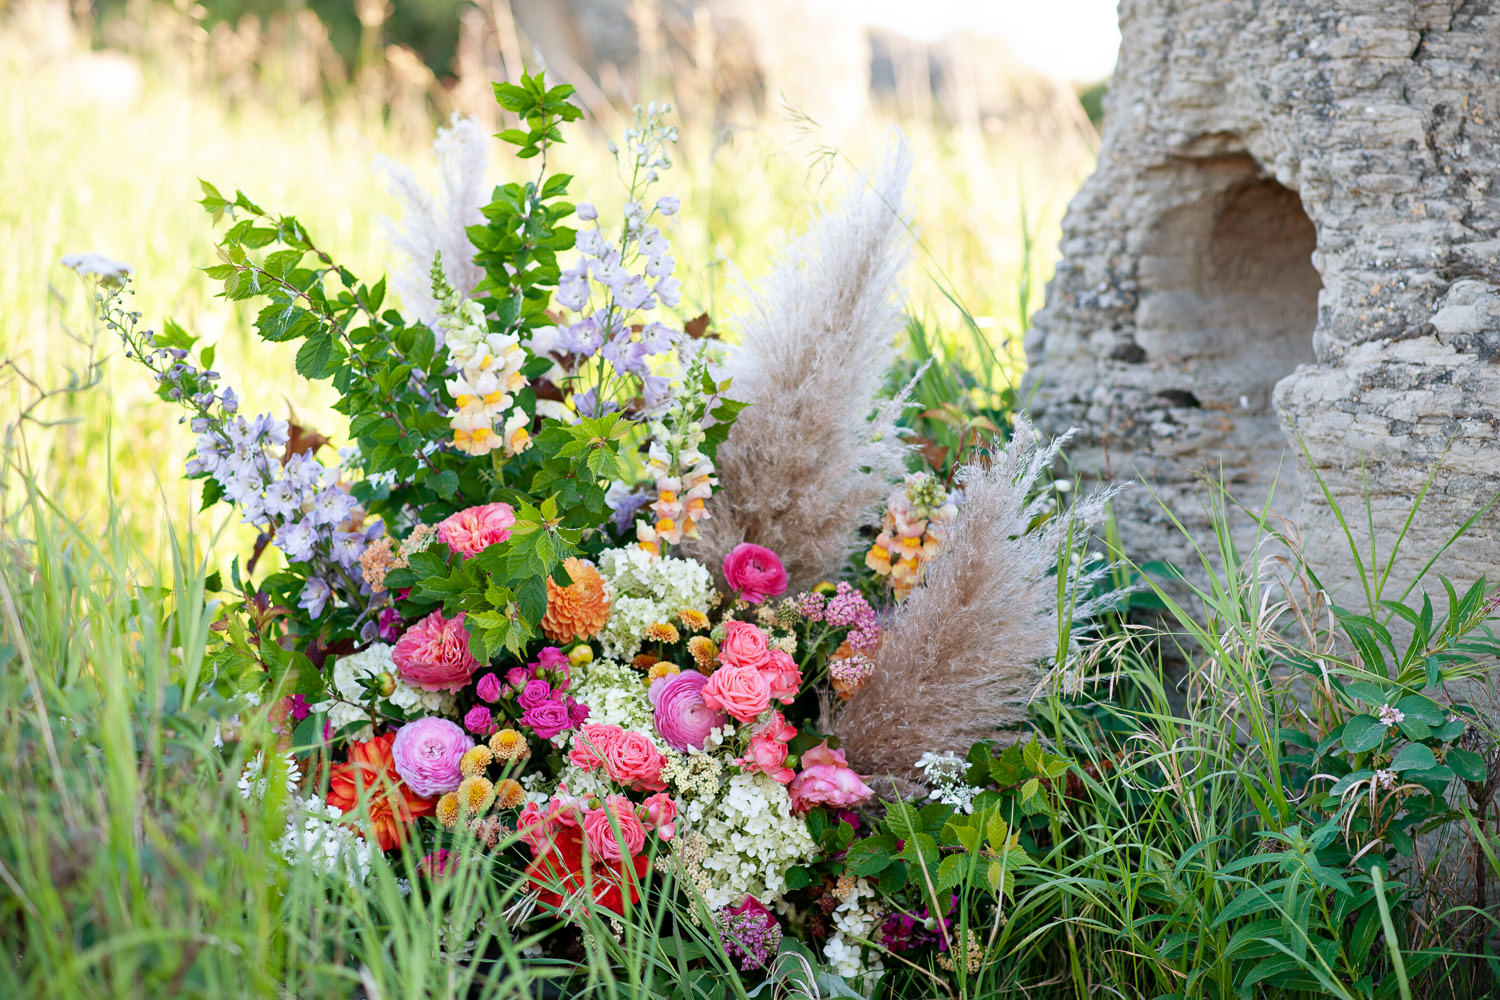 Floral arrangement at the base of a sandstone formation captured by Tara Whittaker Photography